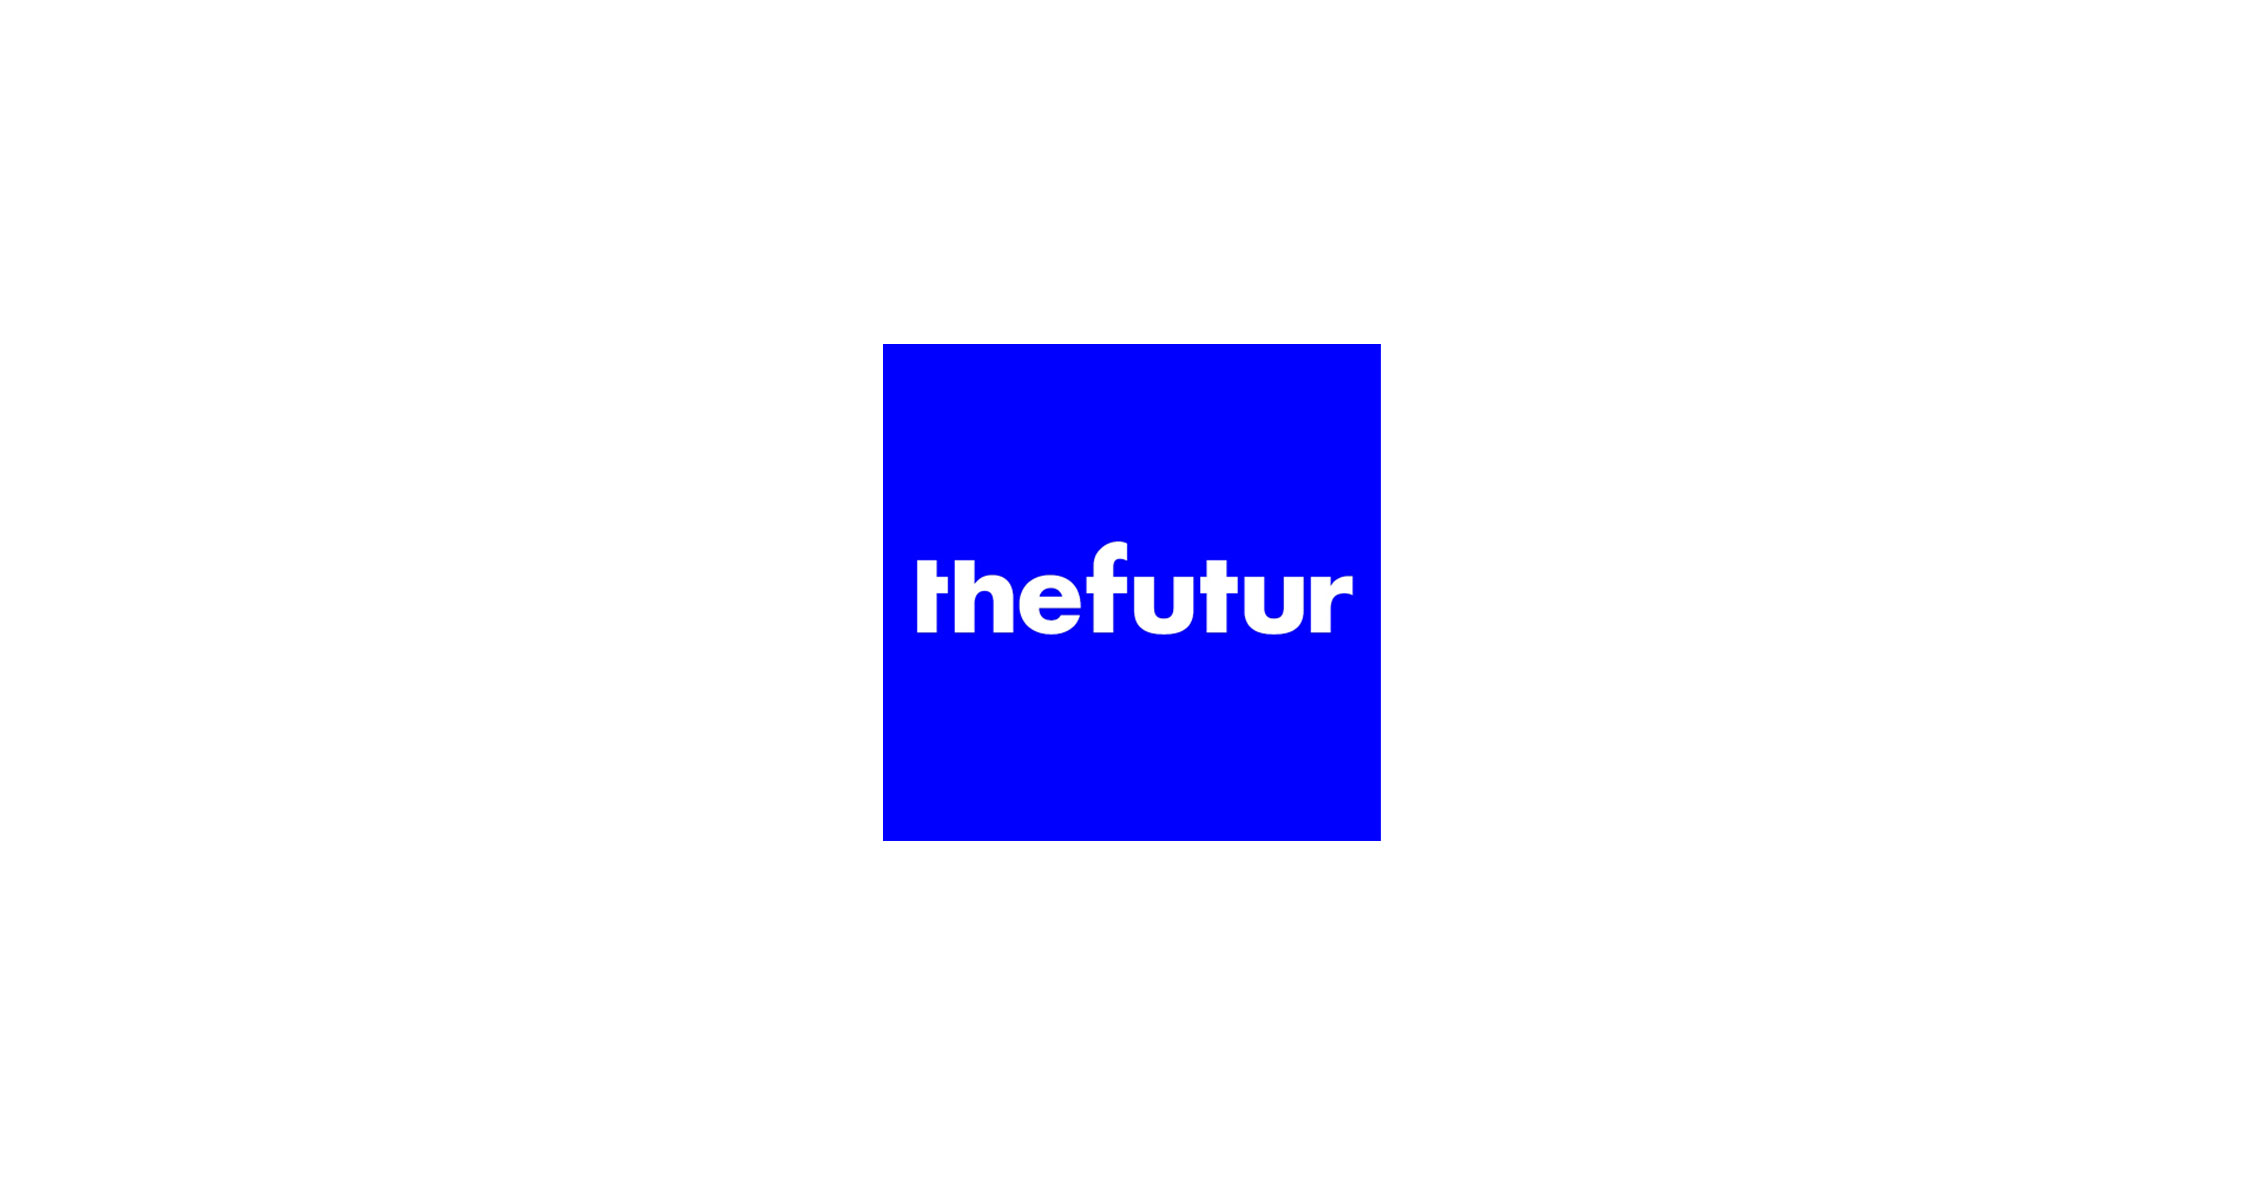 The Futur logo